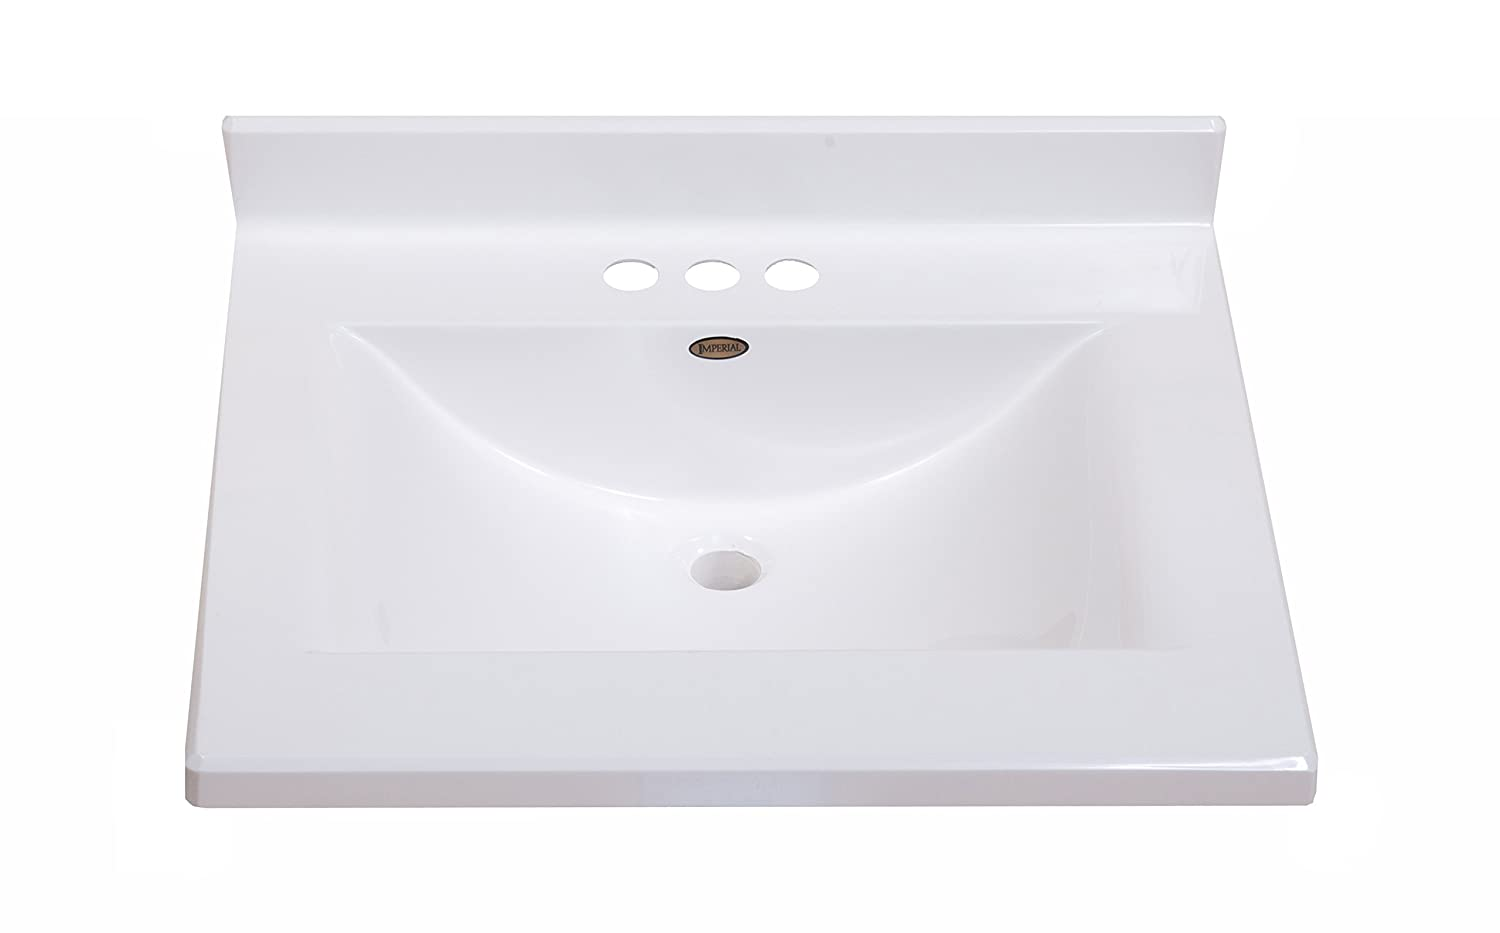 Imperial FW2522SPW Center Wave Bowl Bathroom Vanity Top, Solid White Gloss  Finish, 25 Inch Wide By 22 Inch Deep   Vanity Sinks   Amazon.com